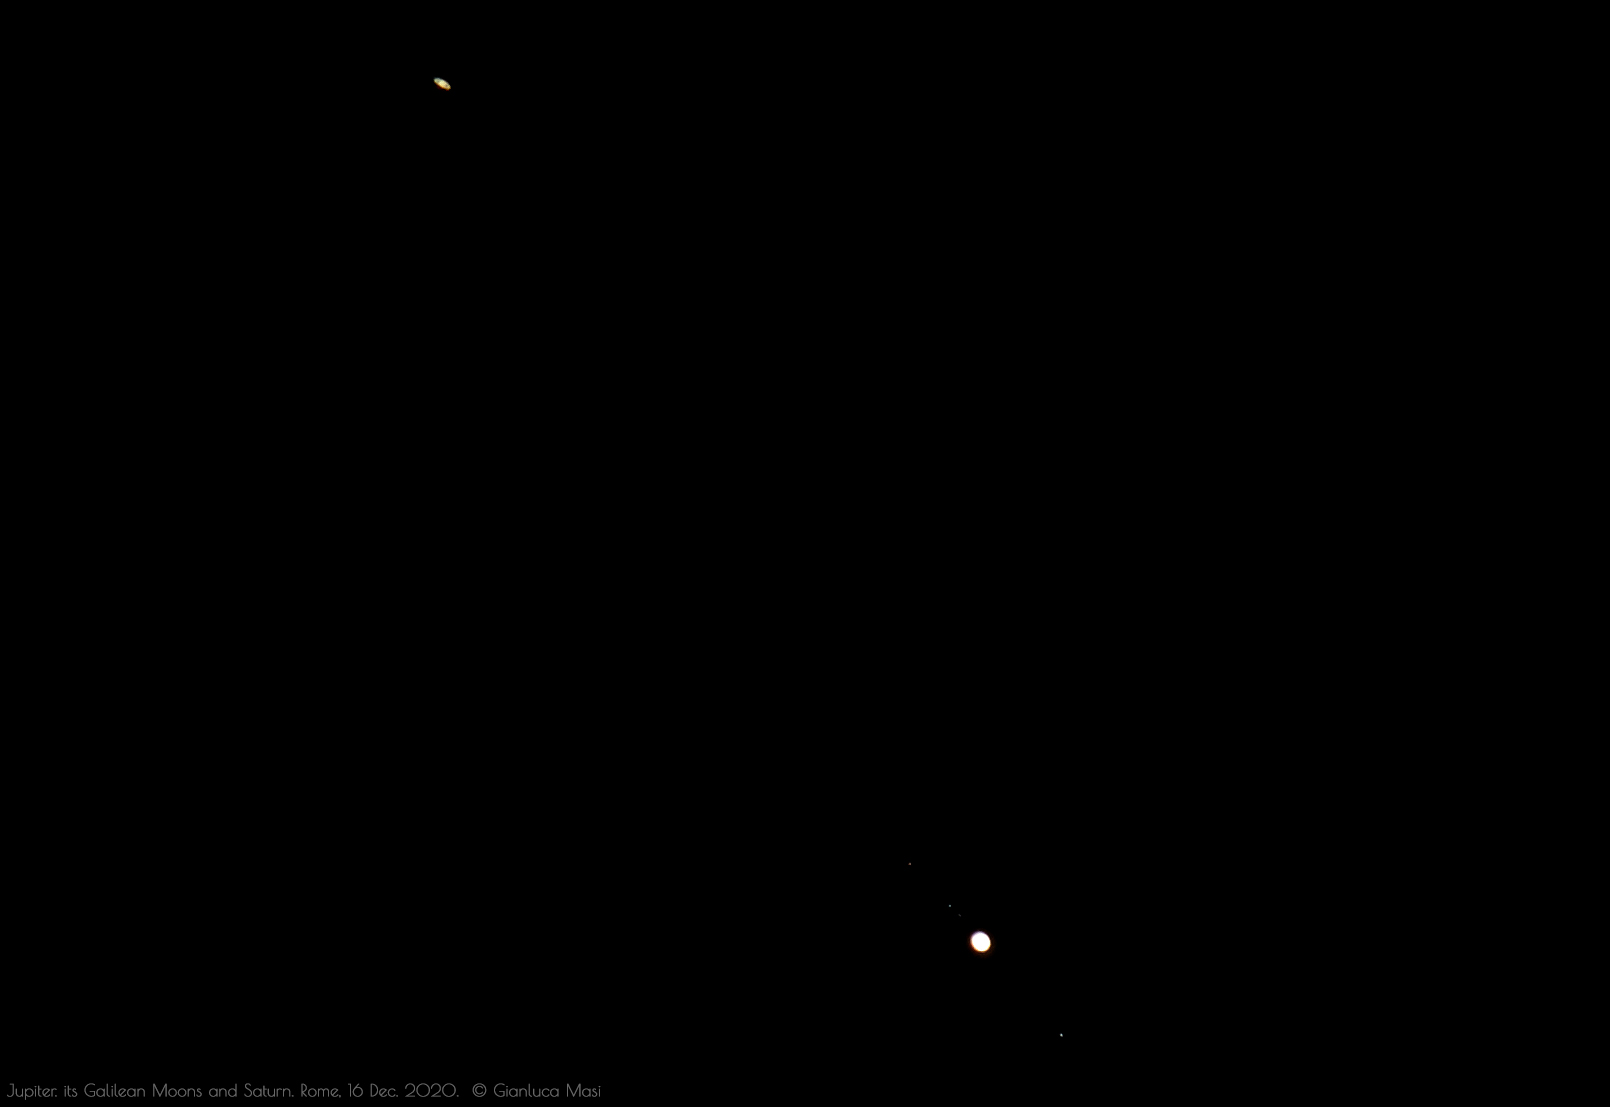 Jupiter shows its principal, four satellites in this image, while pairing with Saturn.